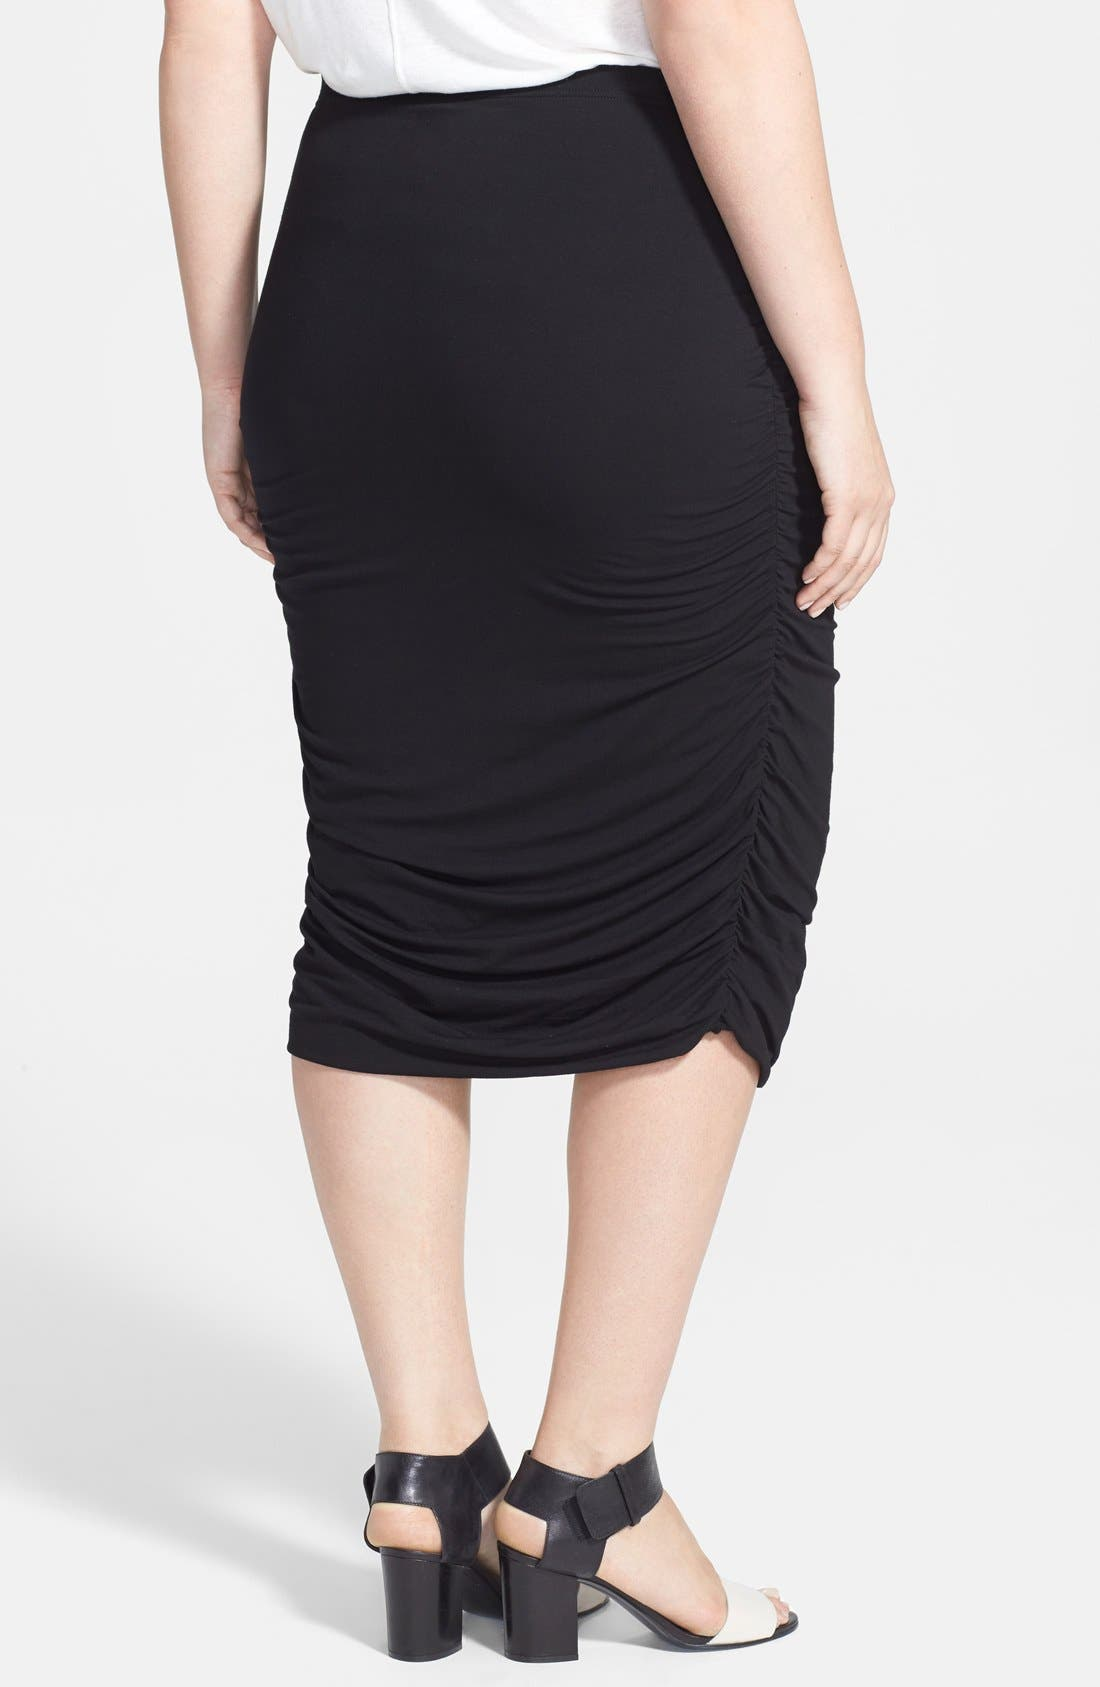 VINCE CAMUTO, Ruched Stretch Knit Midi Skirt, Alternate thumbnail 2, color, 001